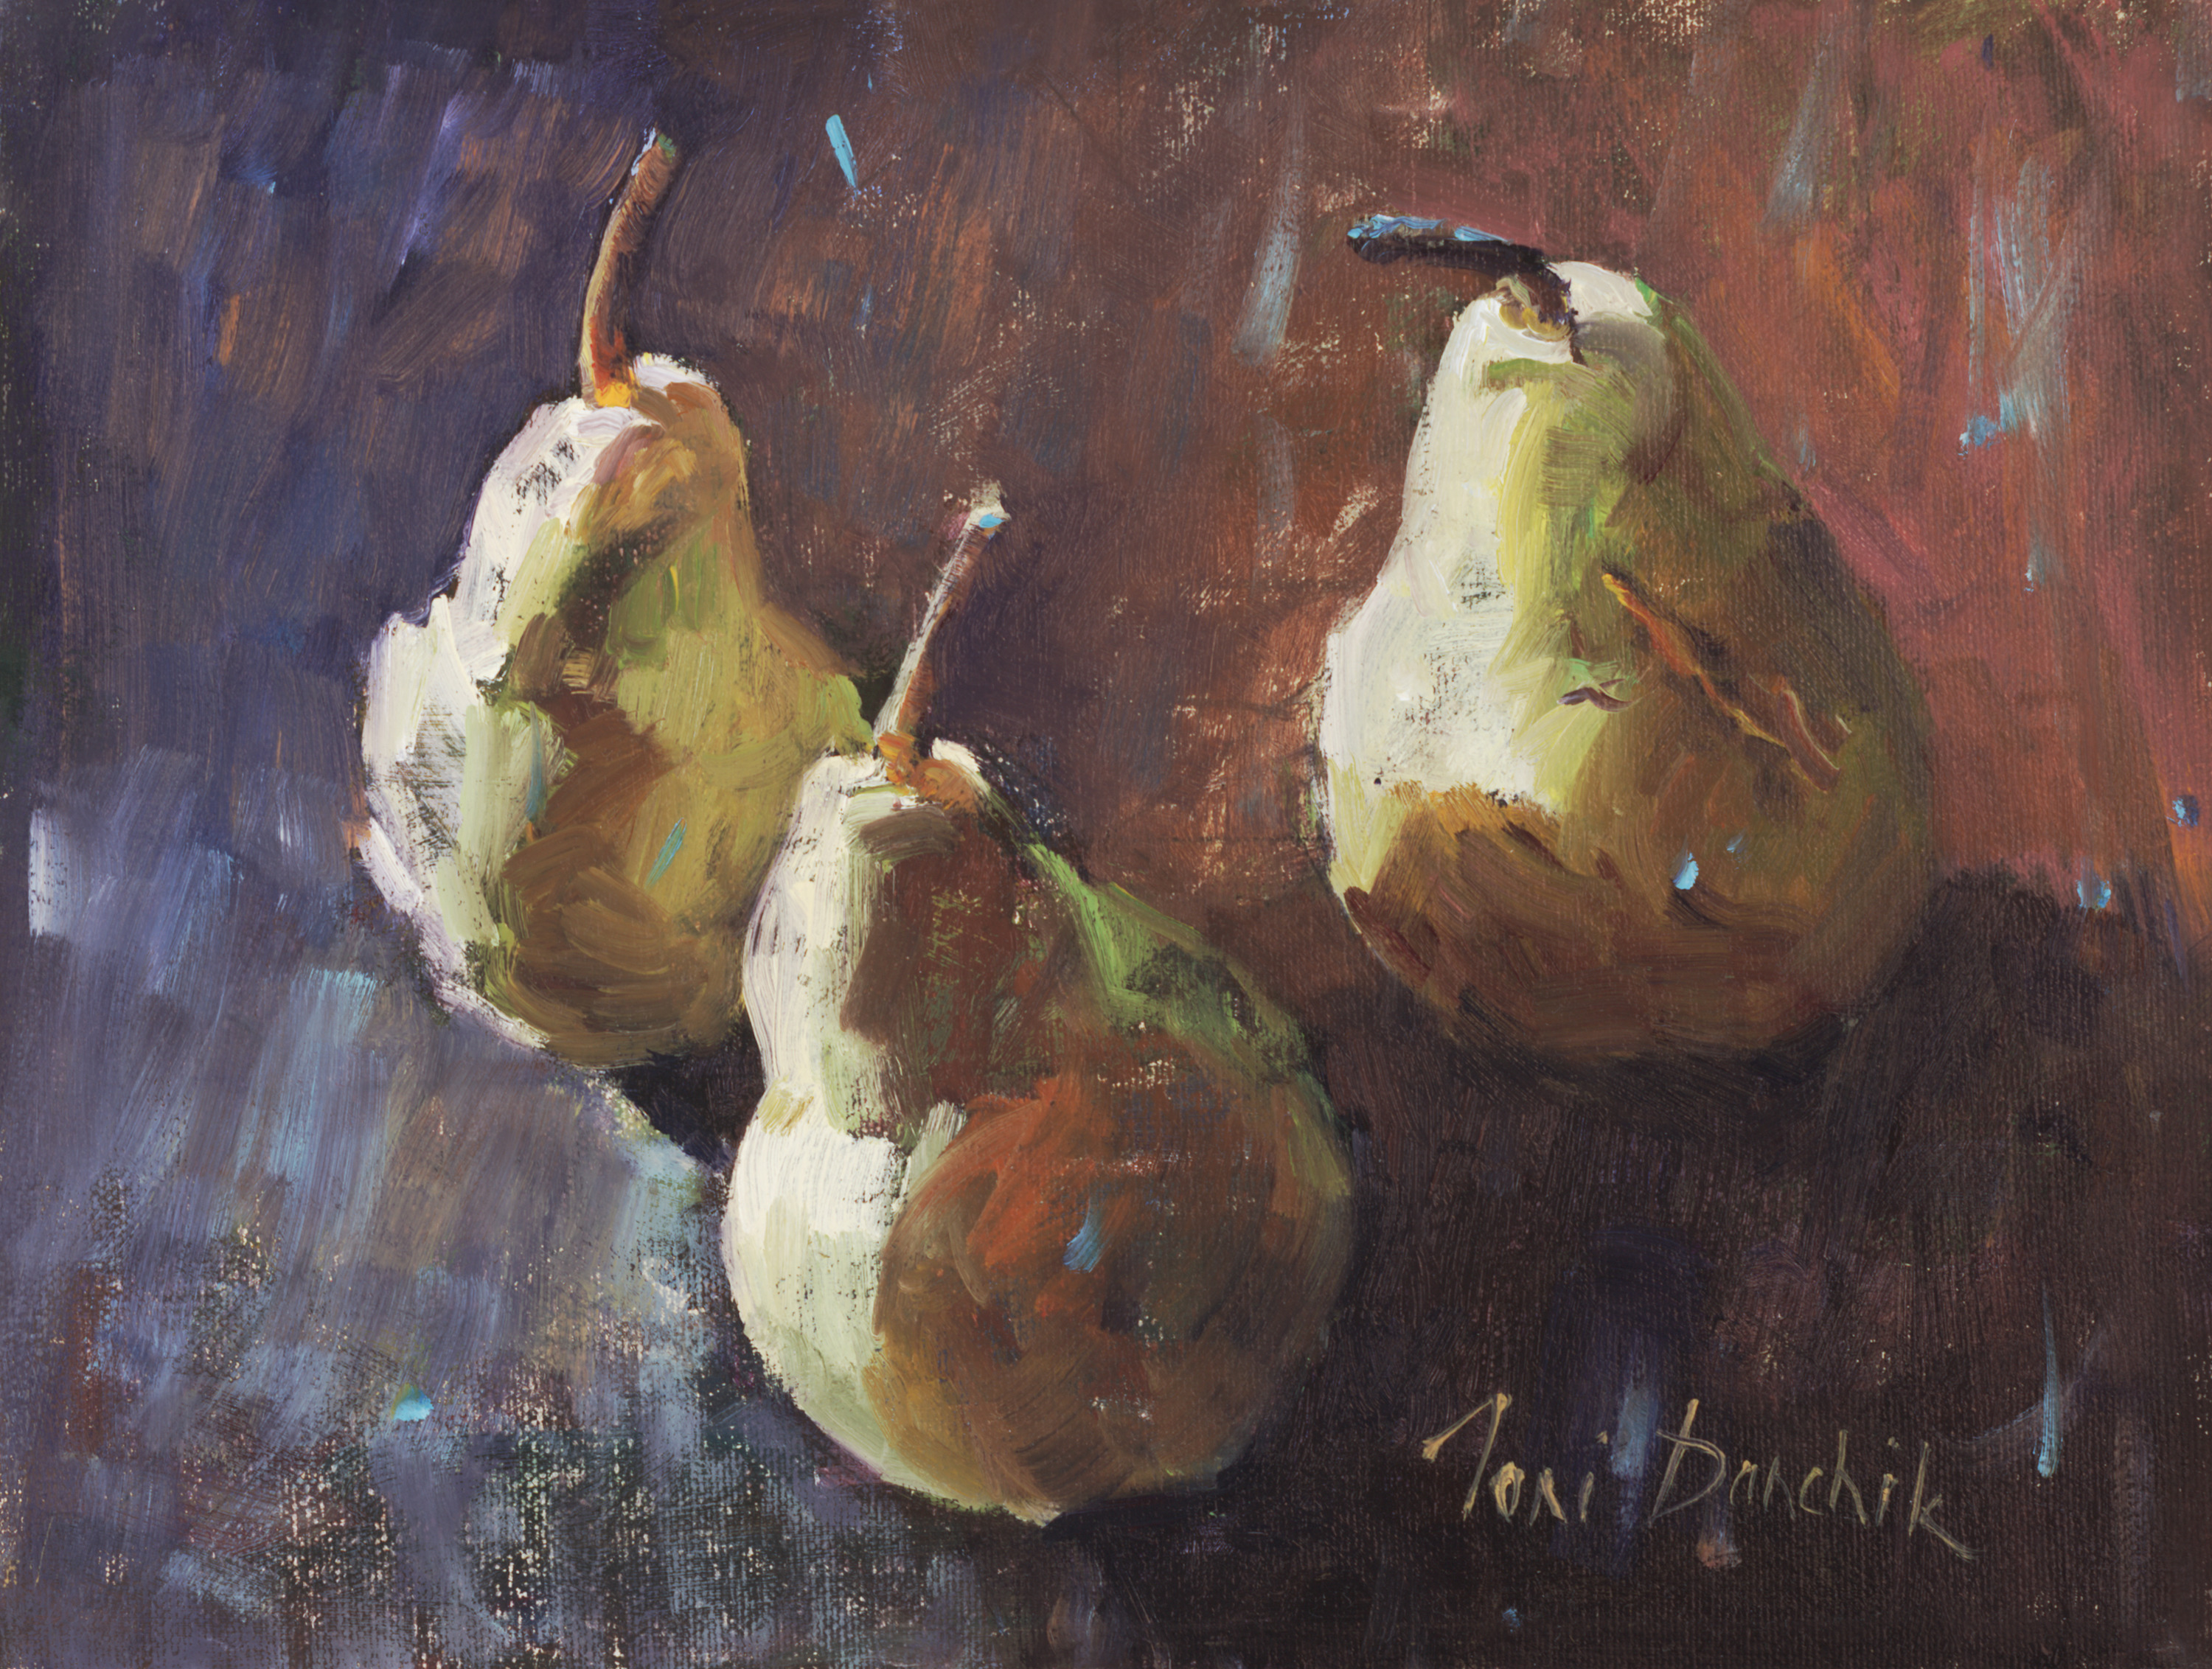 Toni danchik three rustic pears 12 x 9 ibxfdt